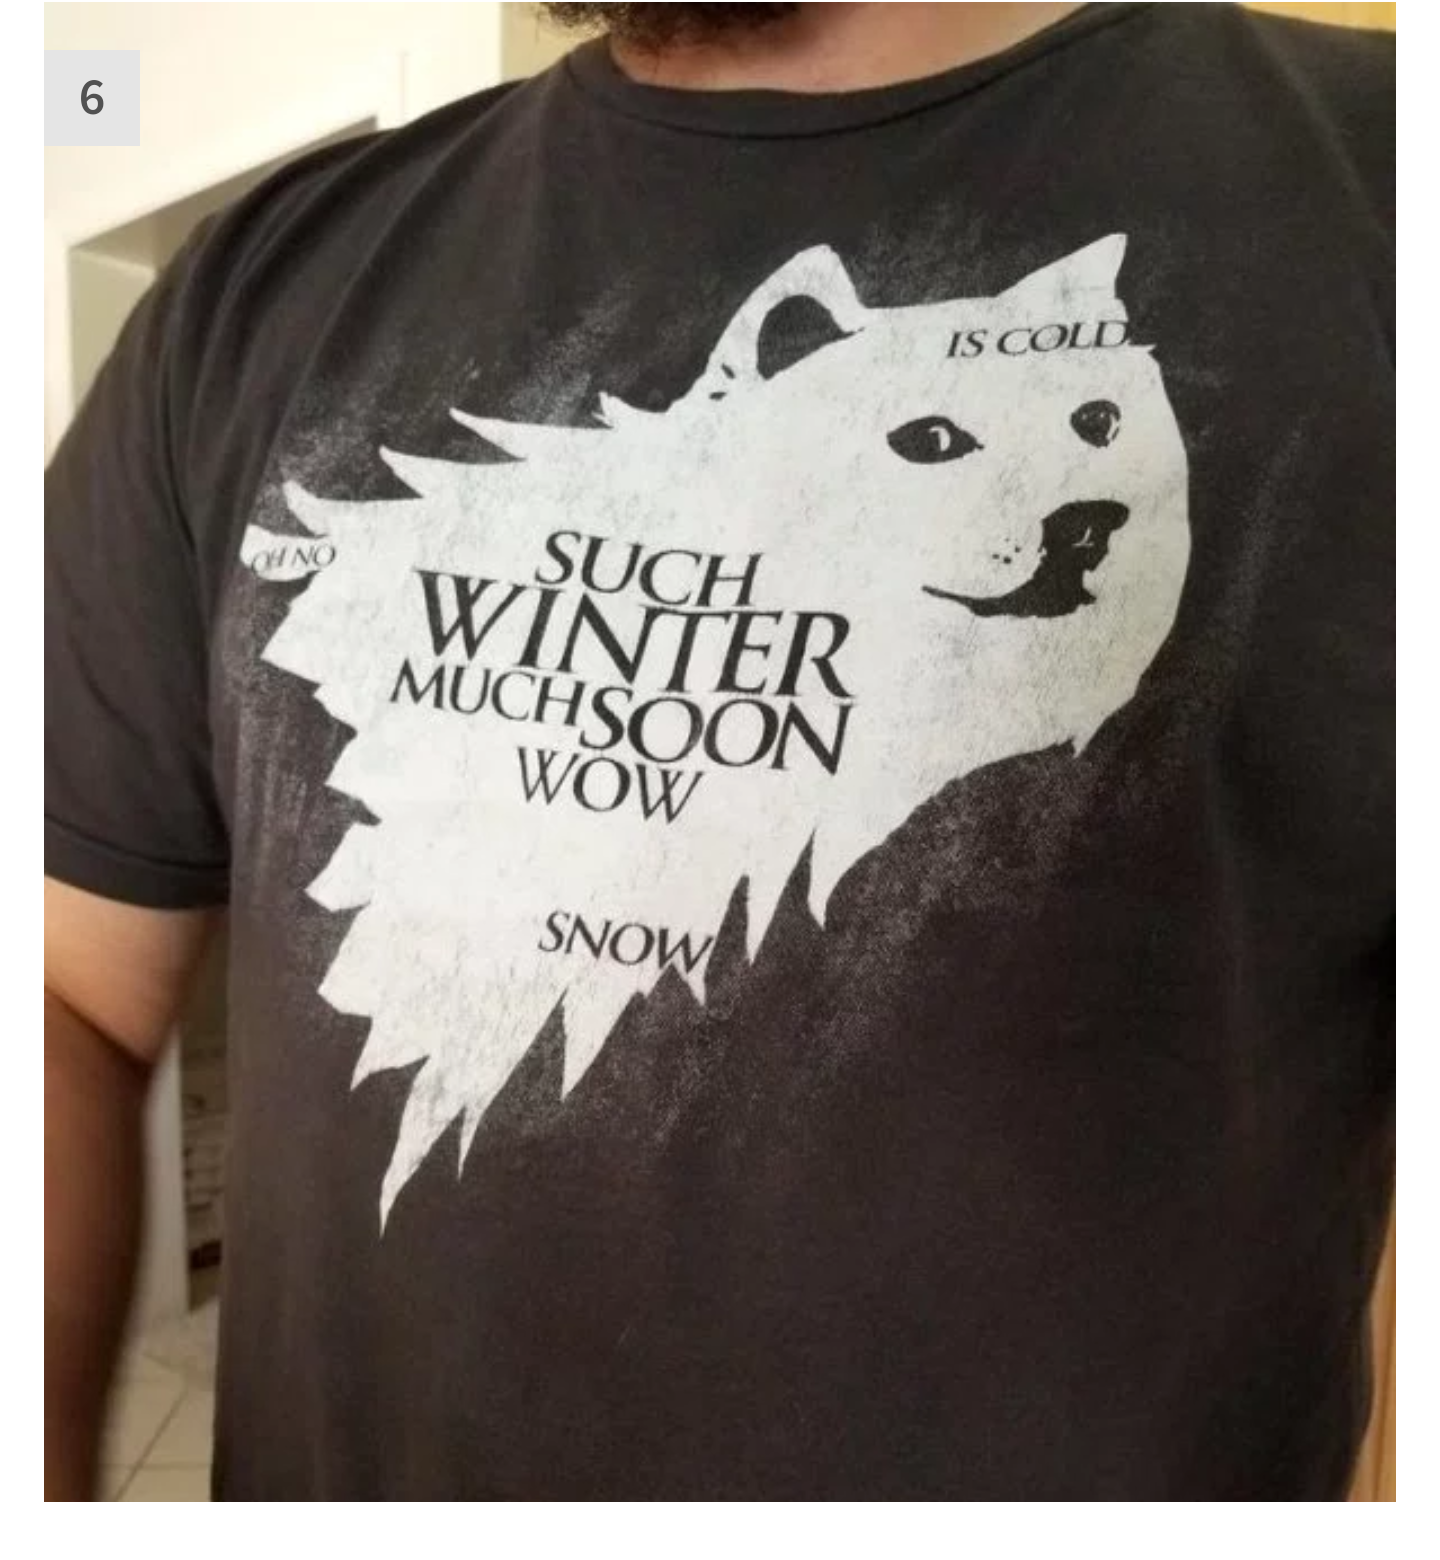 http://www.friendbookmark.com/images/GOT/game-of-thrones-funny-memes-22.png